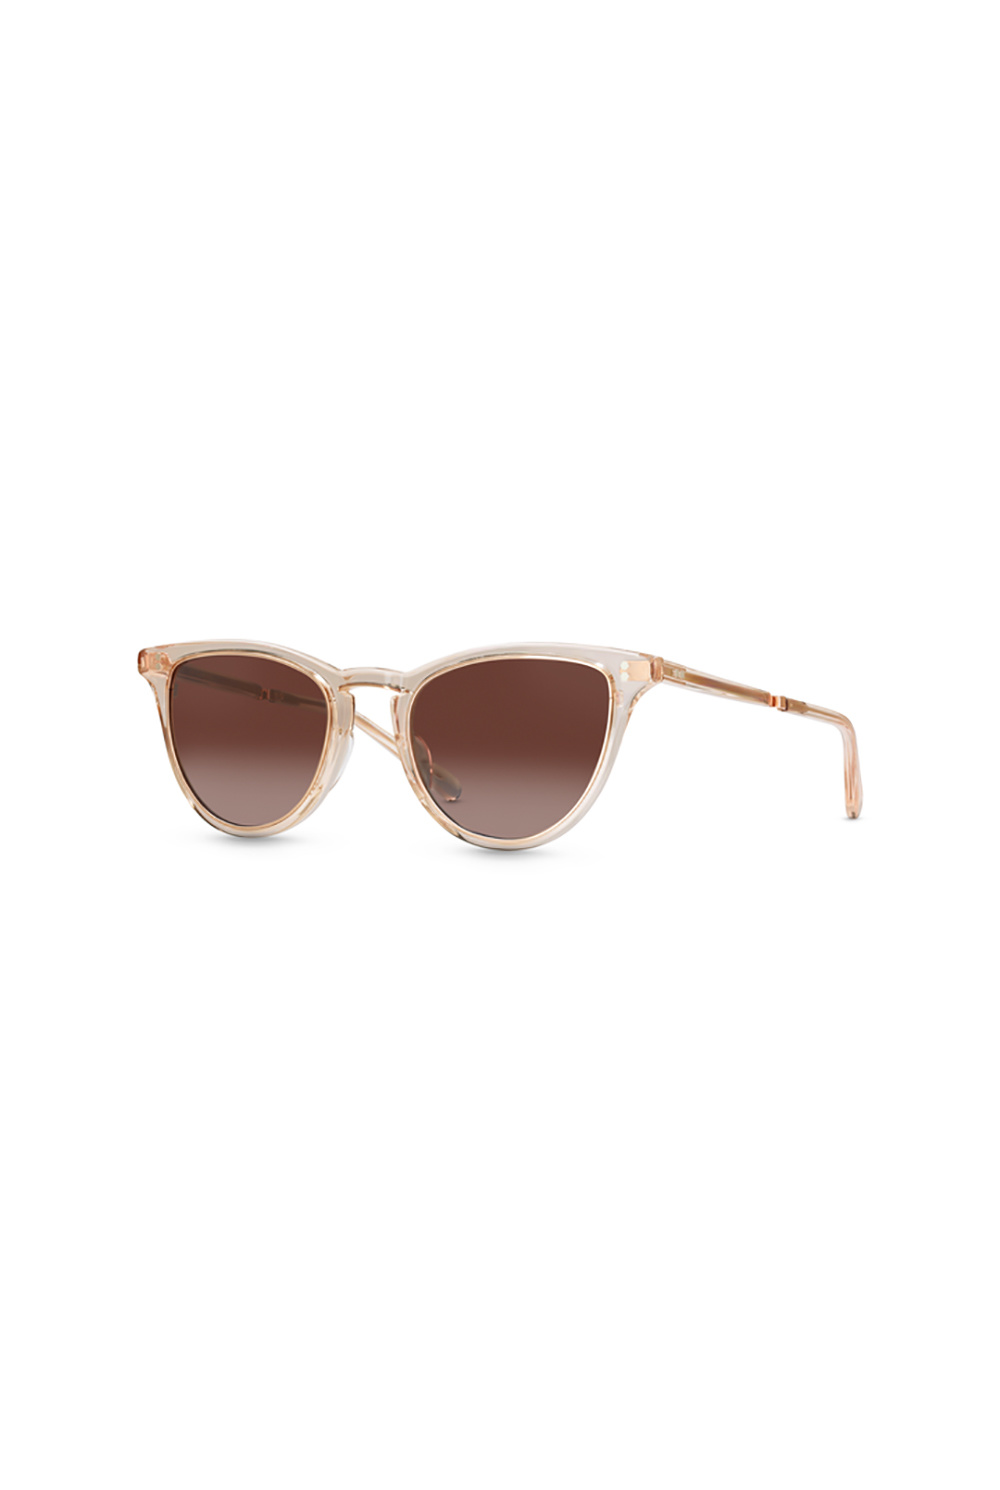 Runyon S51 Lomita-Rose Gold/Sunset